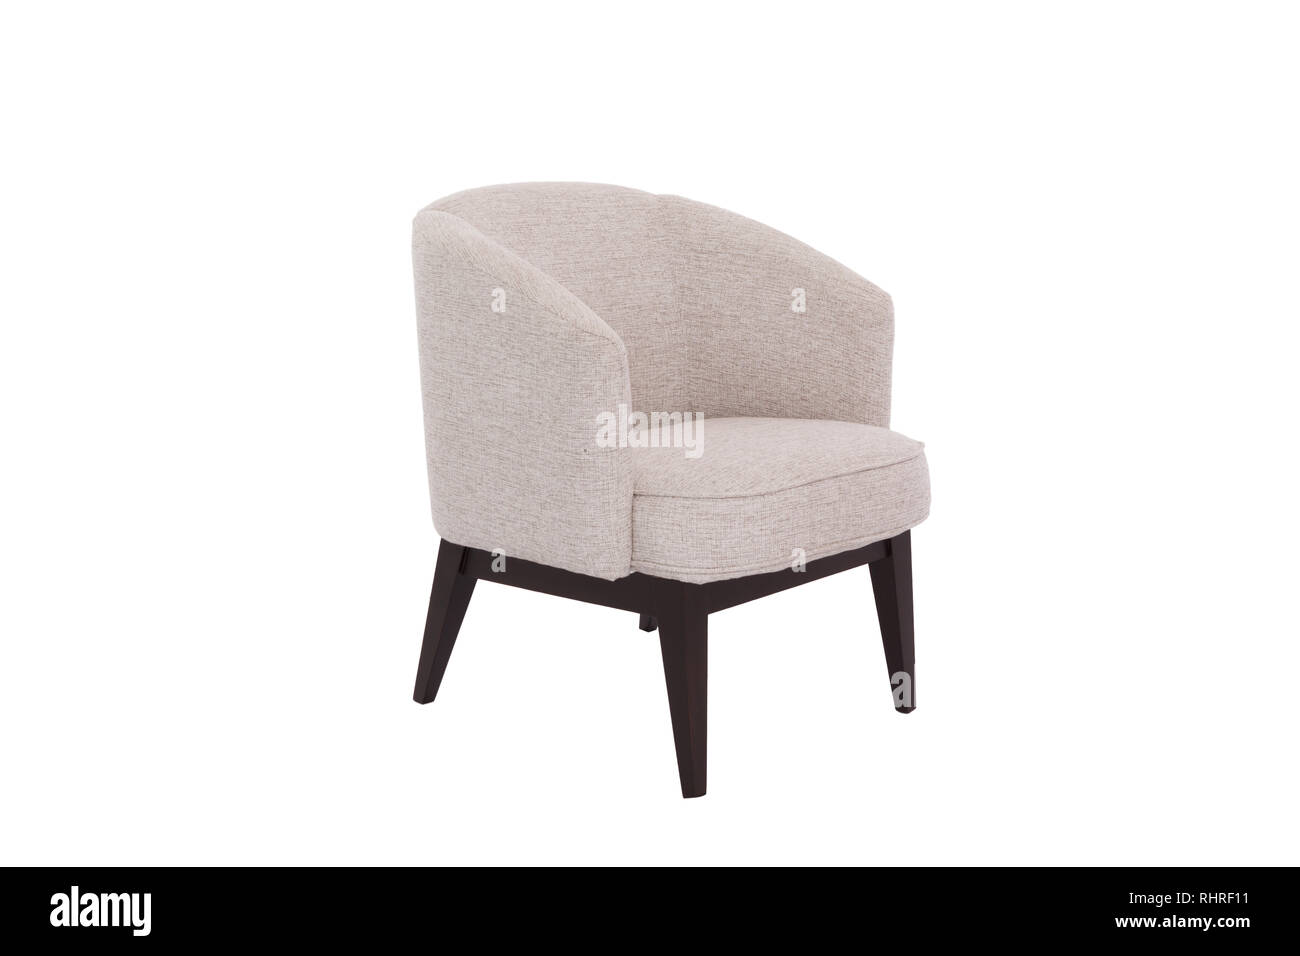 Fabulous Comfy Chair White Background Stock Photos Comfy Chair Ibusinesslaw Wood Chair Design Ideas Ibusinesslaworg